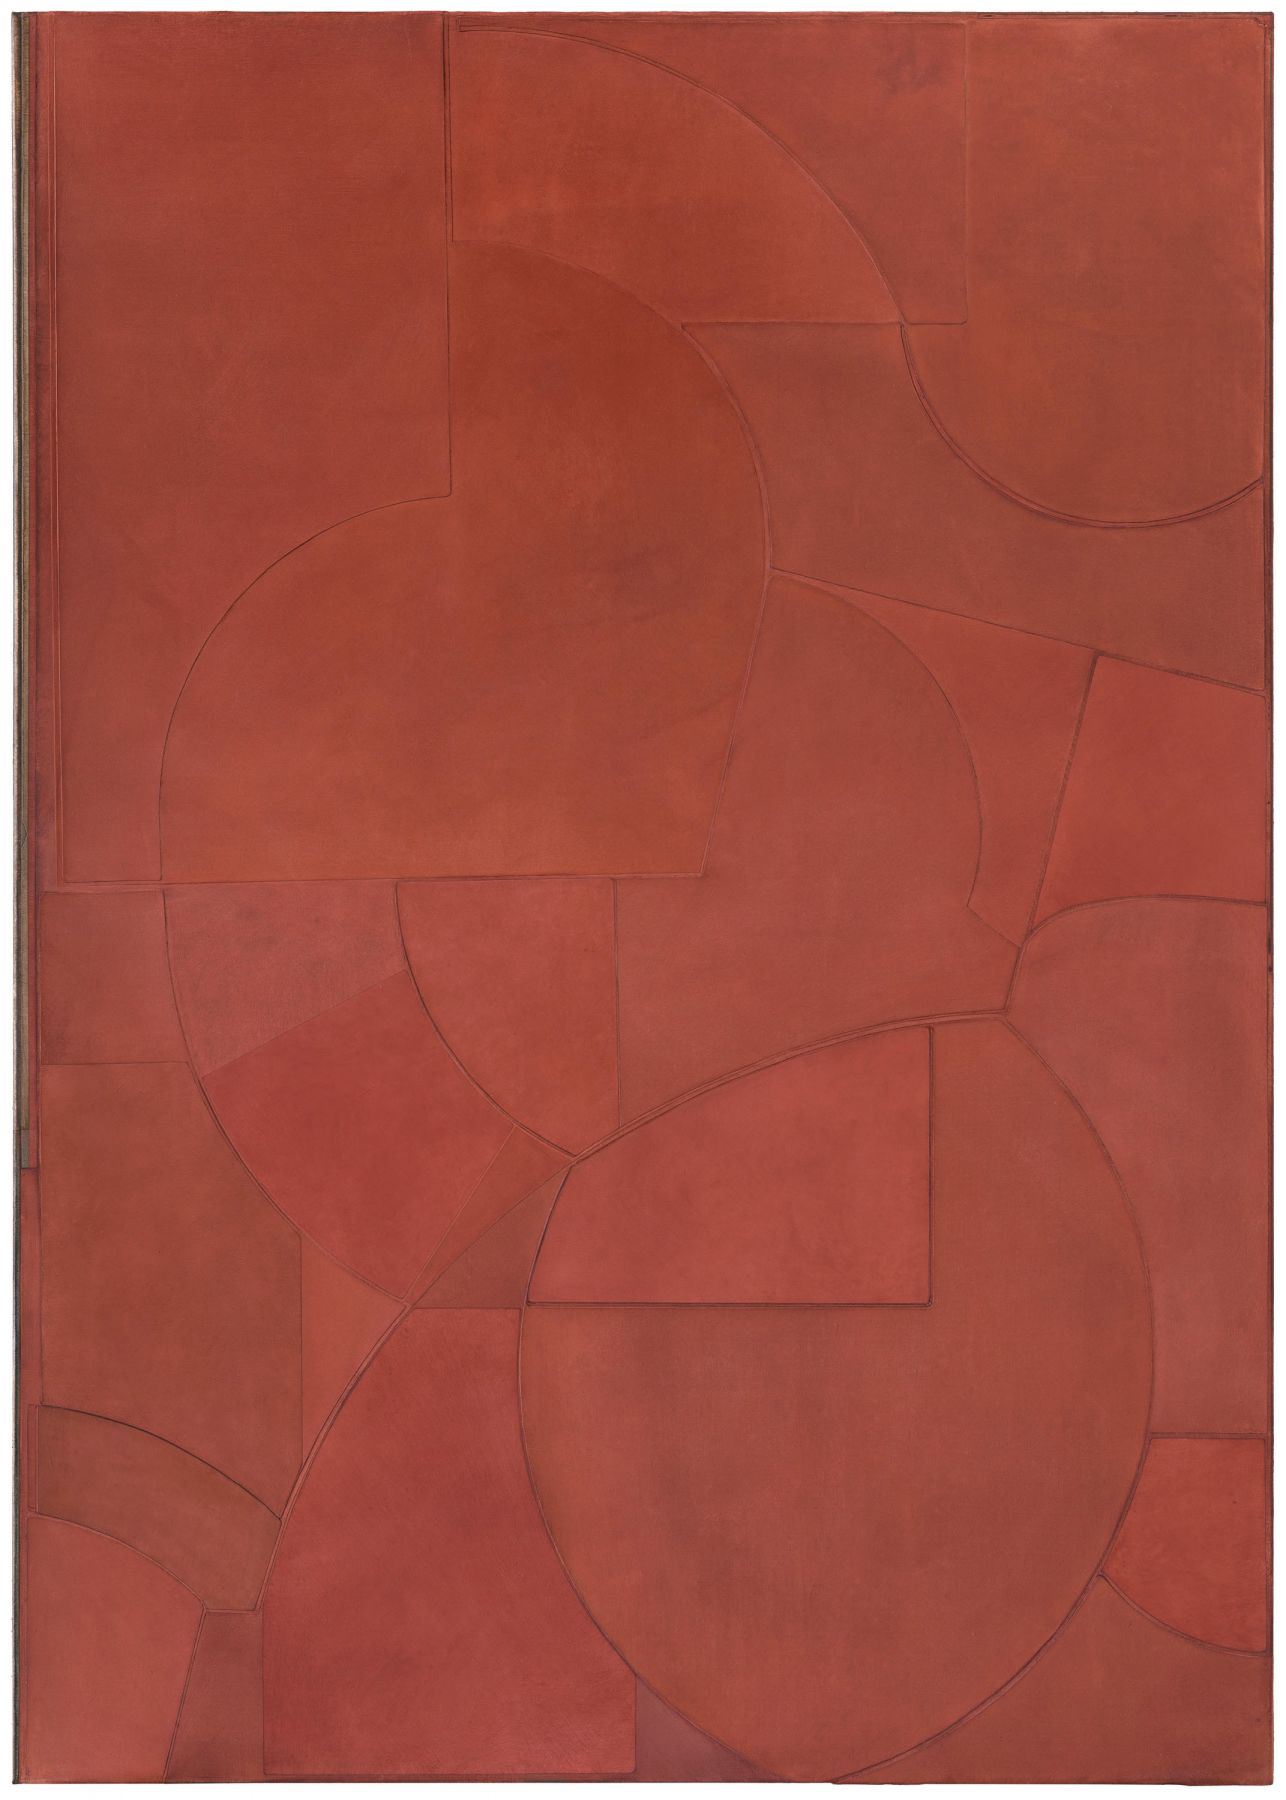 a red painting by Svenja Deininger, the Viennese artist